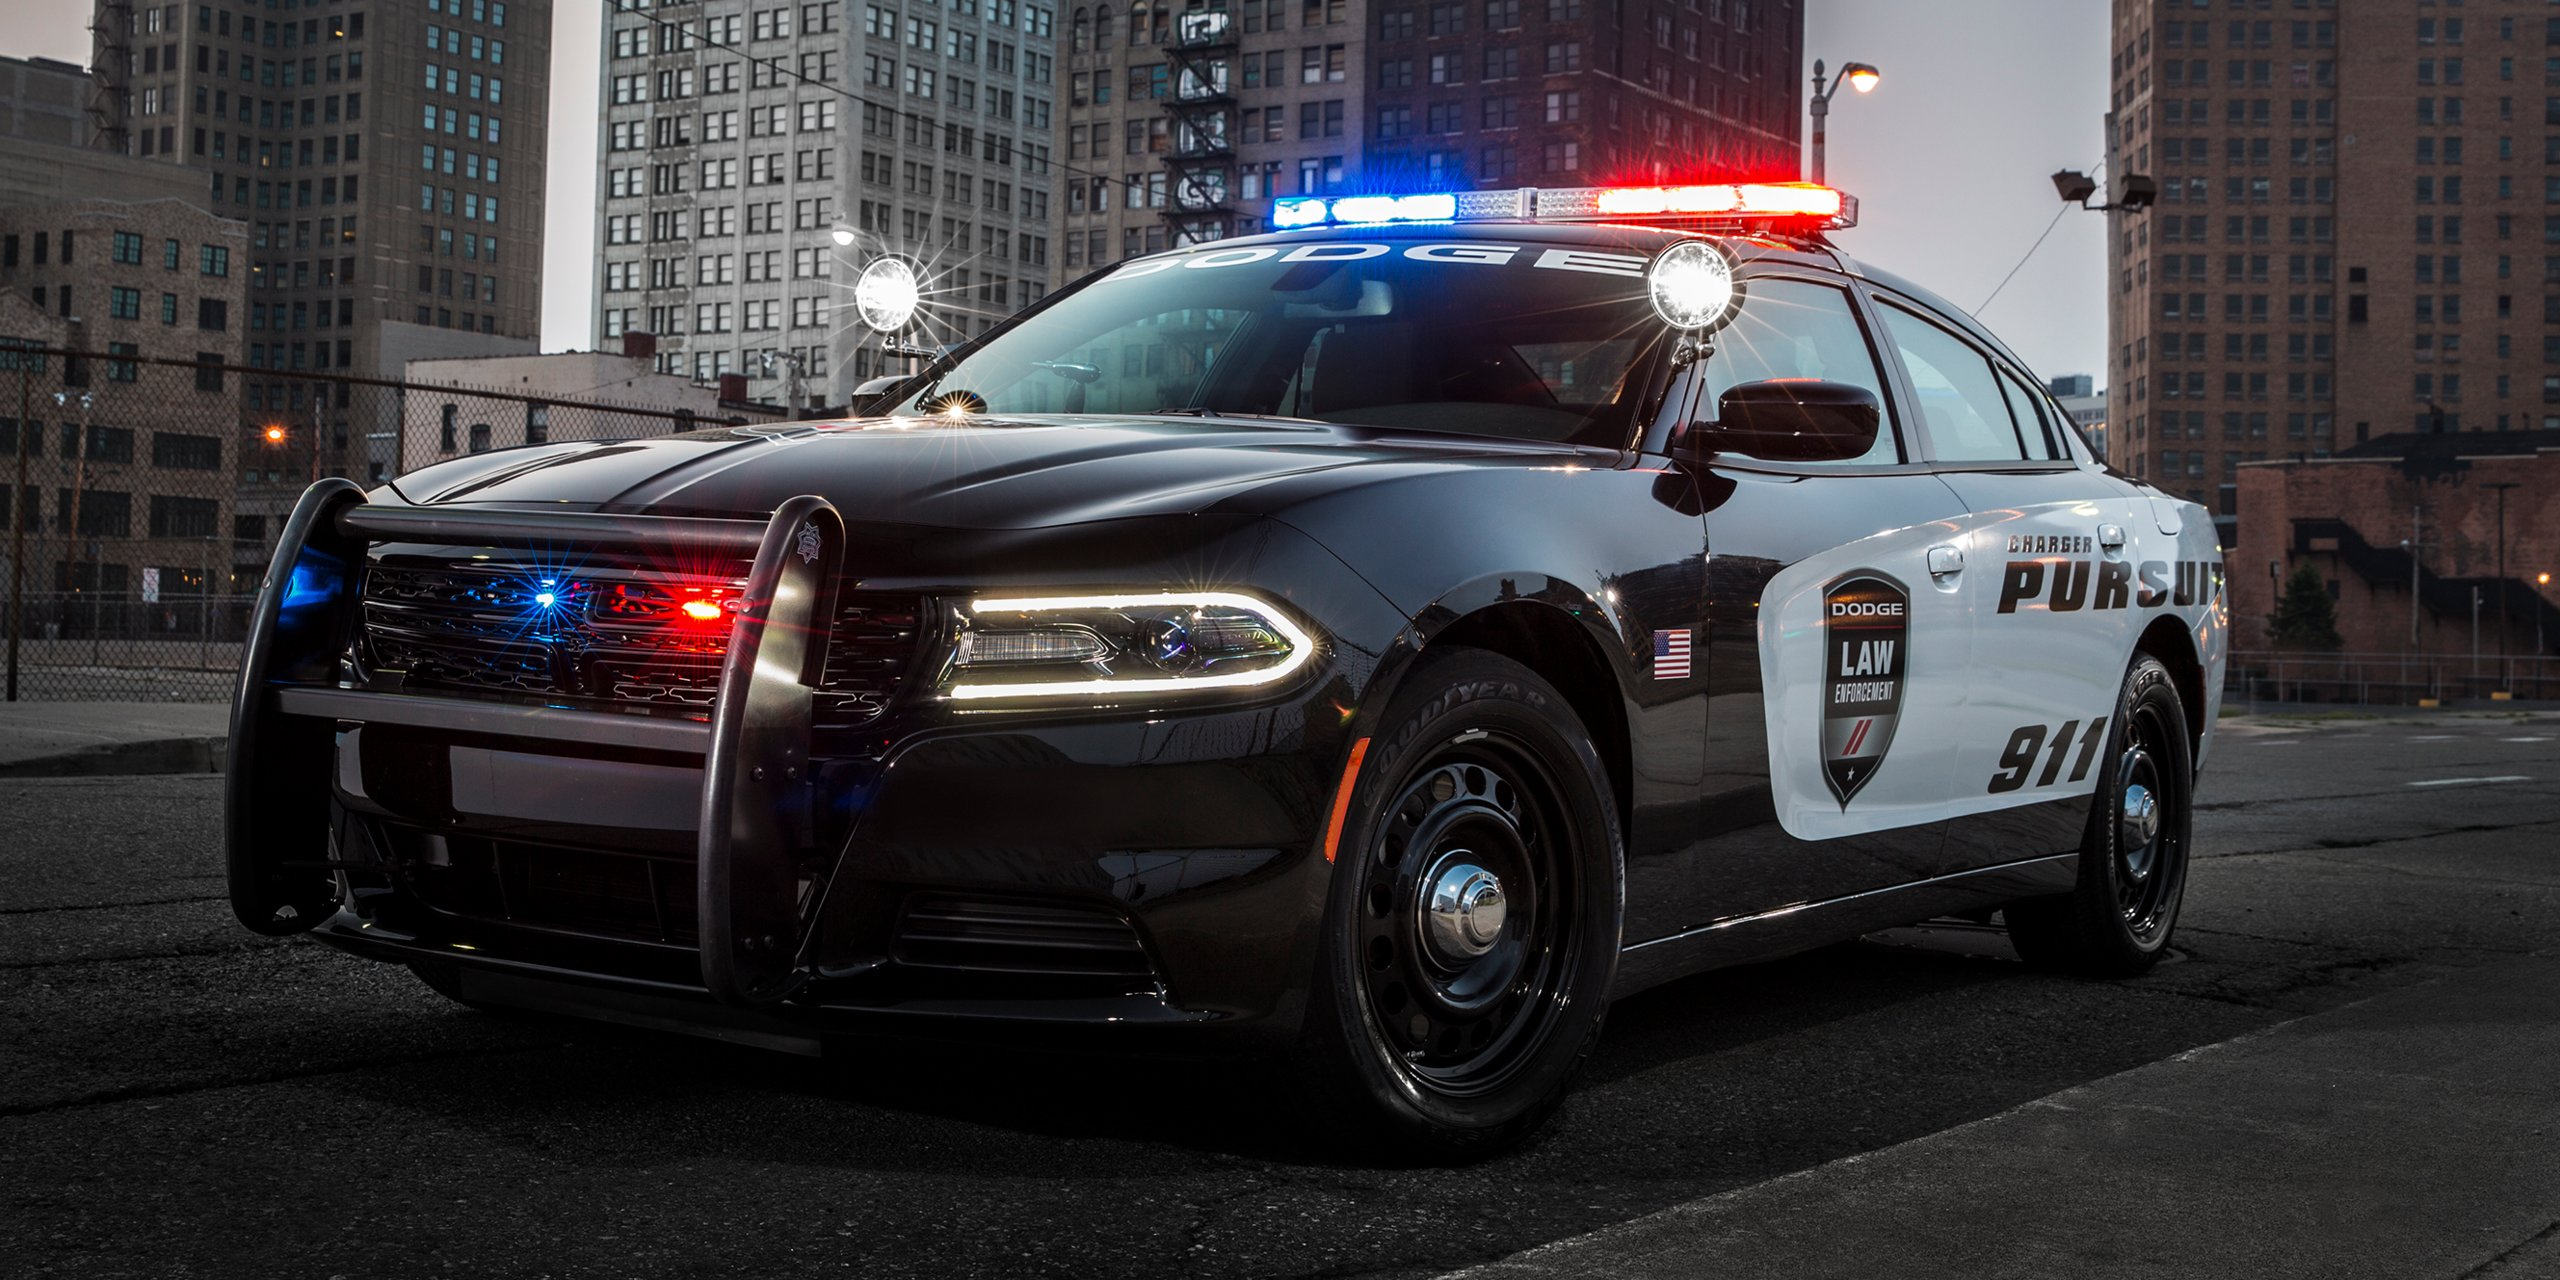 Retired Police Cars for Sale Near Me Beautiful Fastest Police Cars In America Business Insider